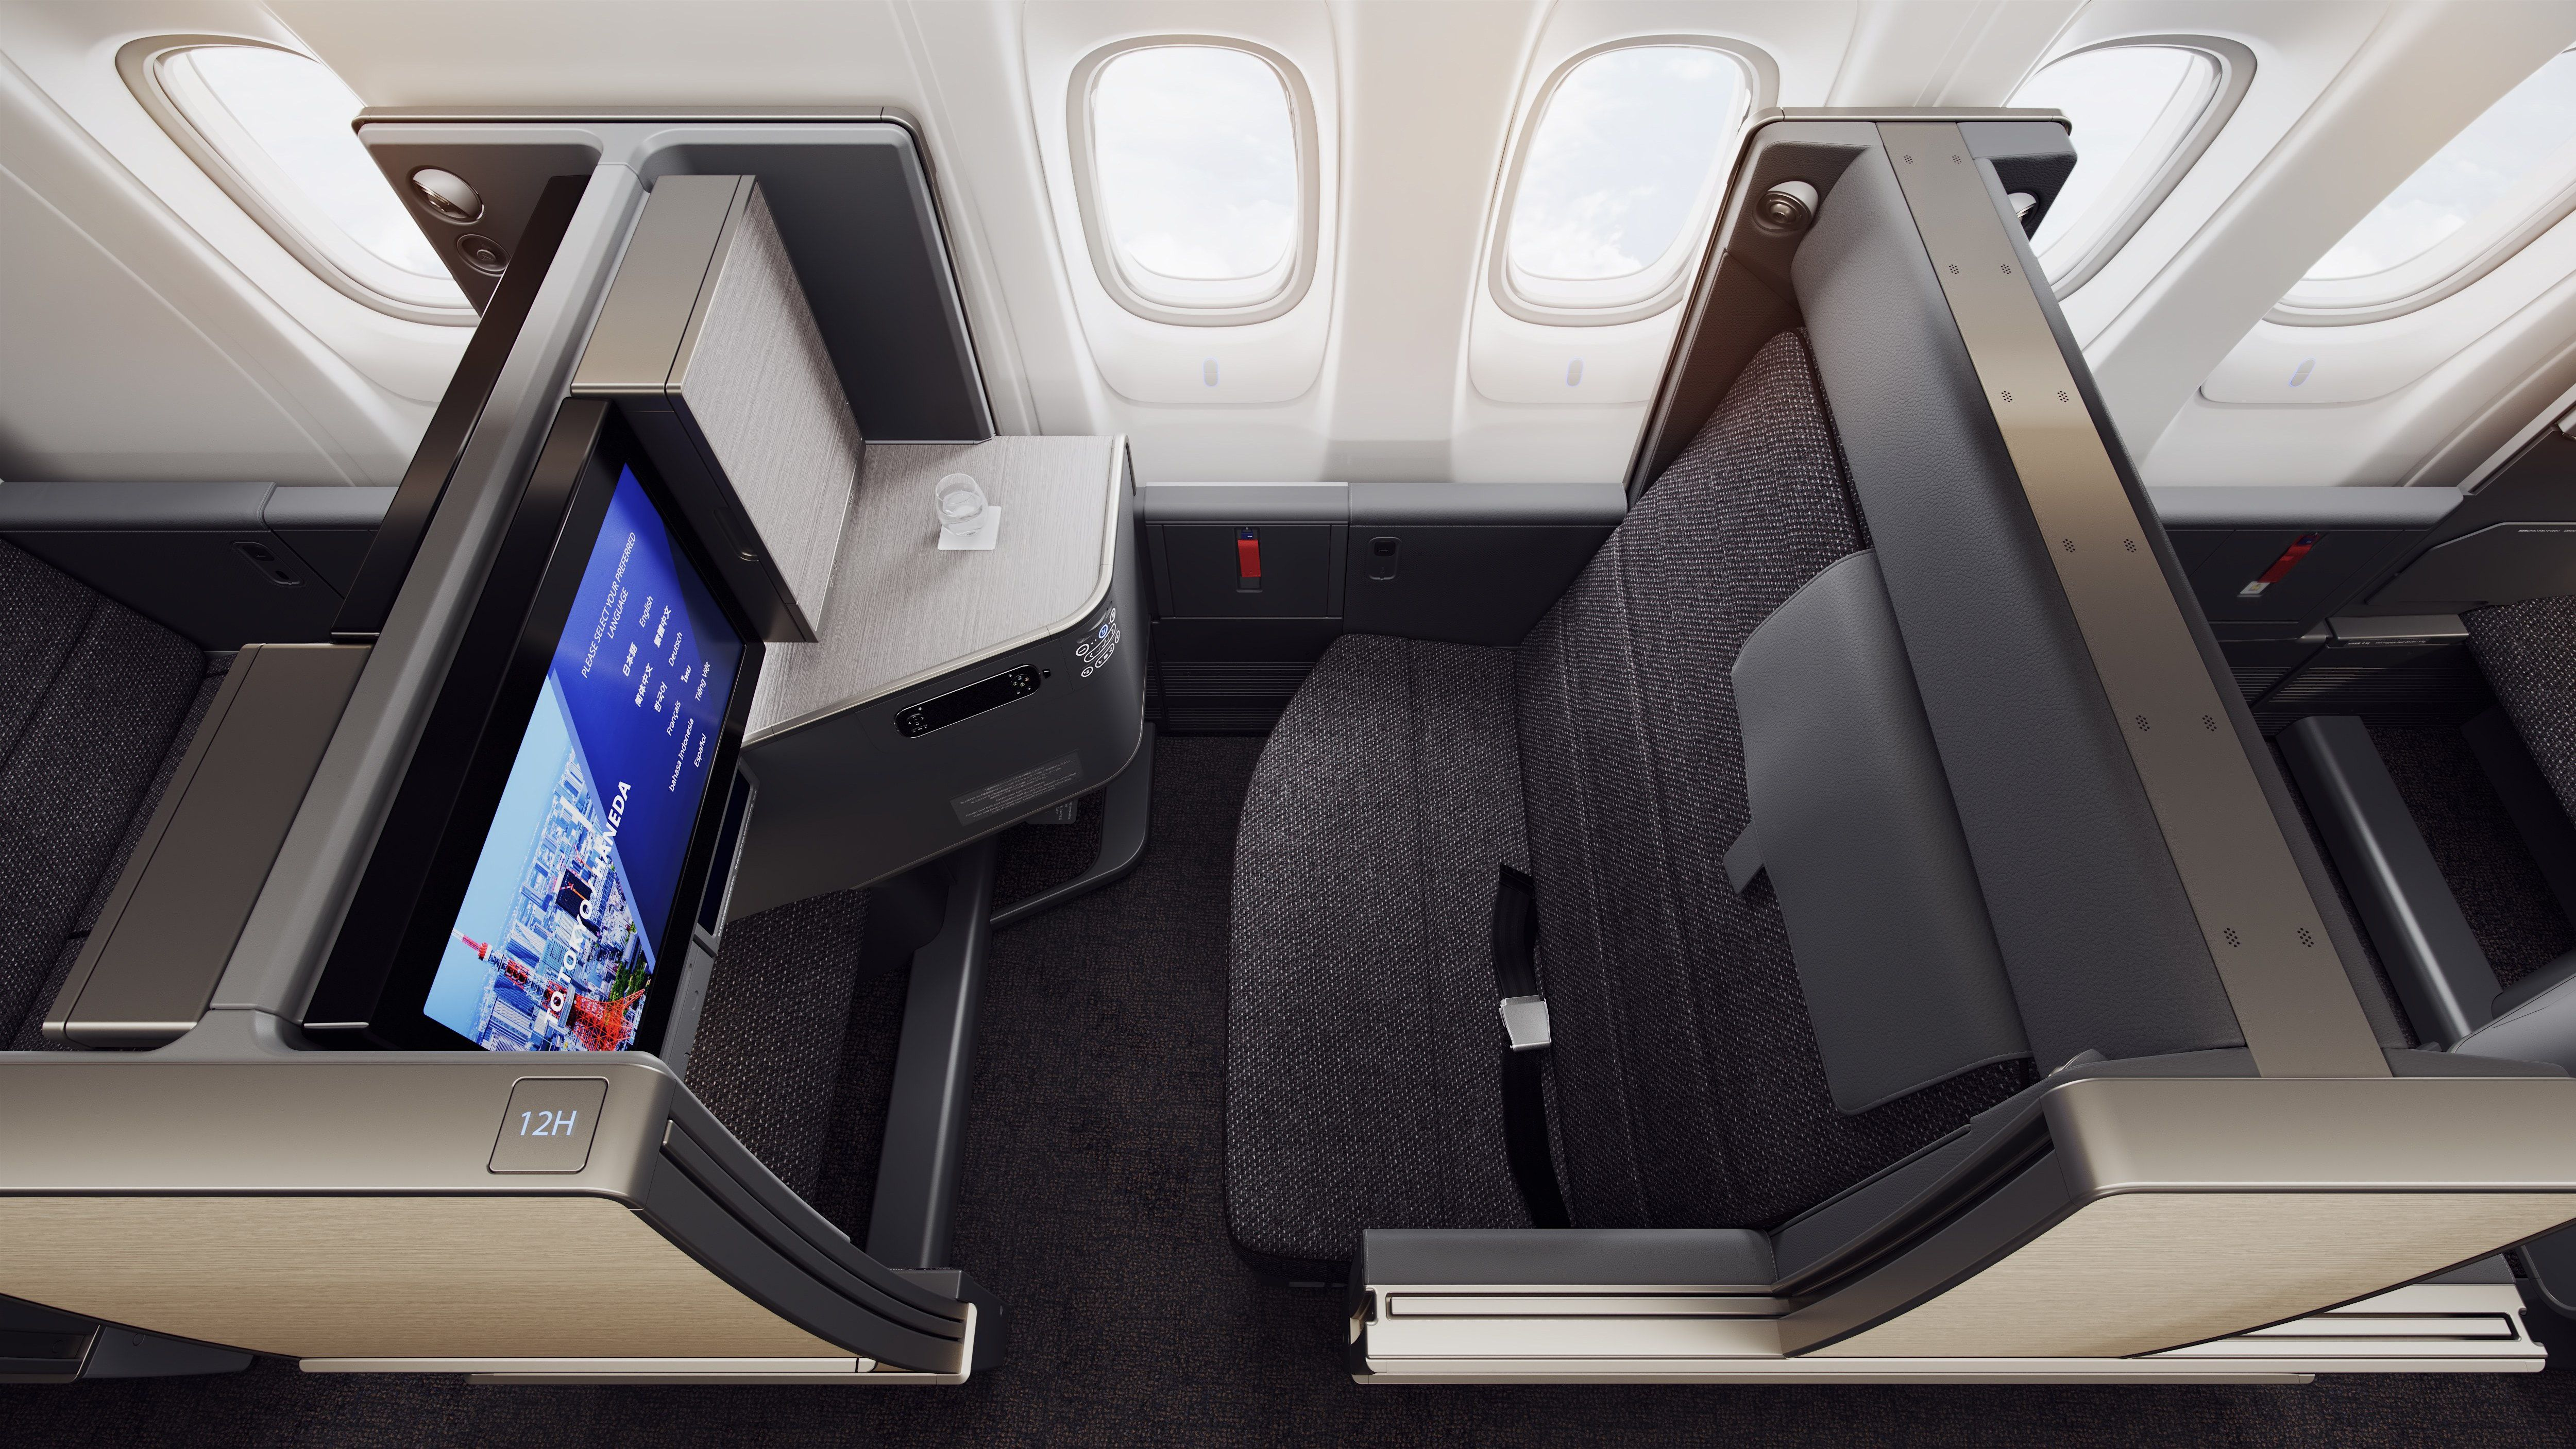 A Review of ANA's New Business Class on the Boeing 777-300ER